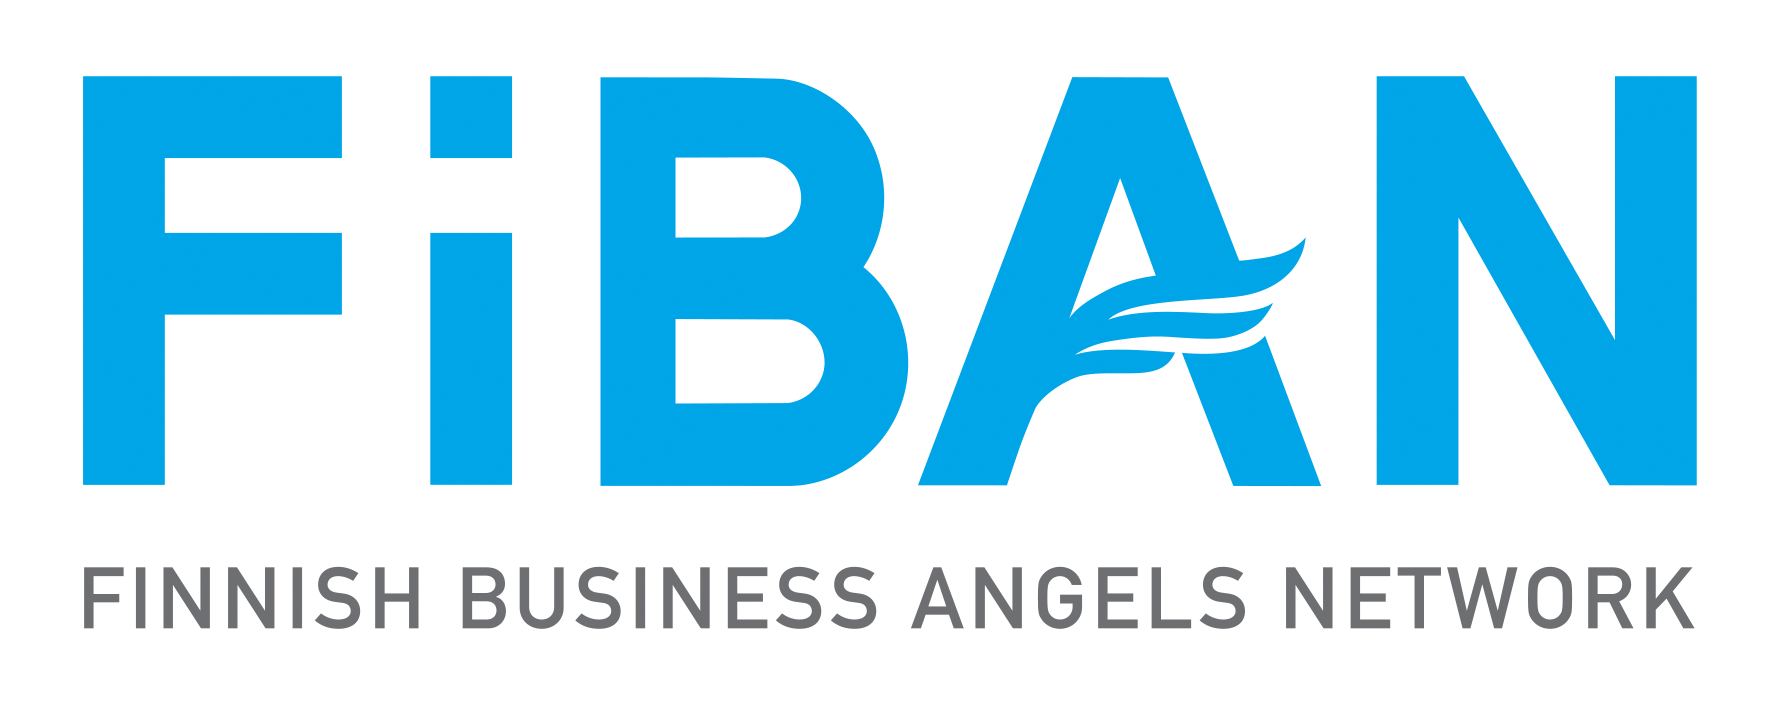 Finnish Business Angels Network